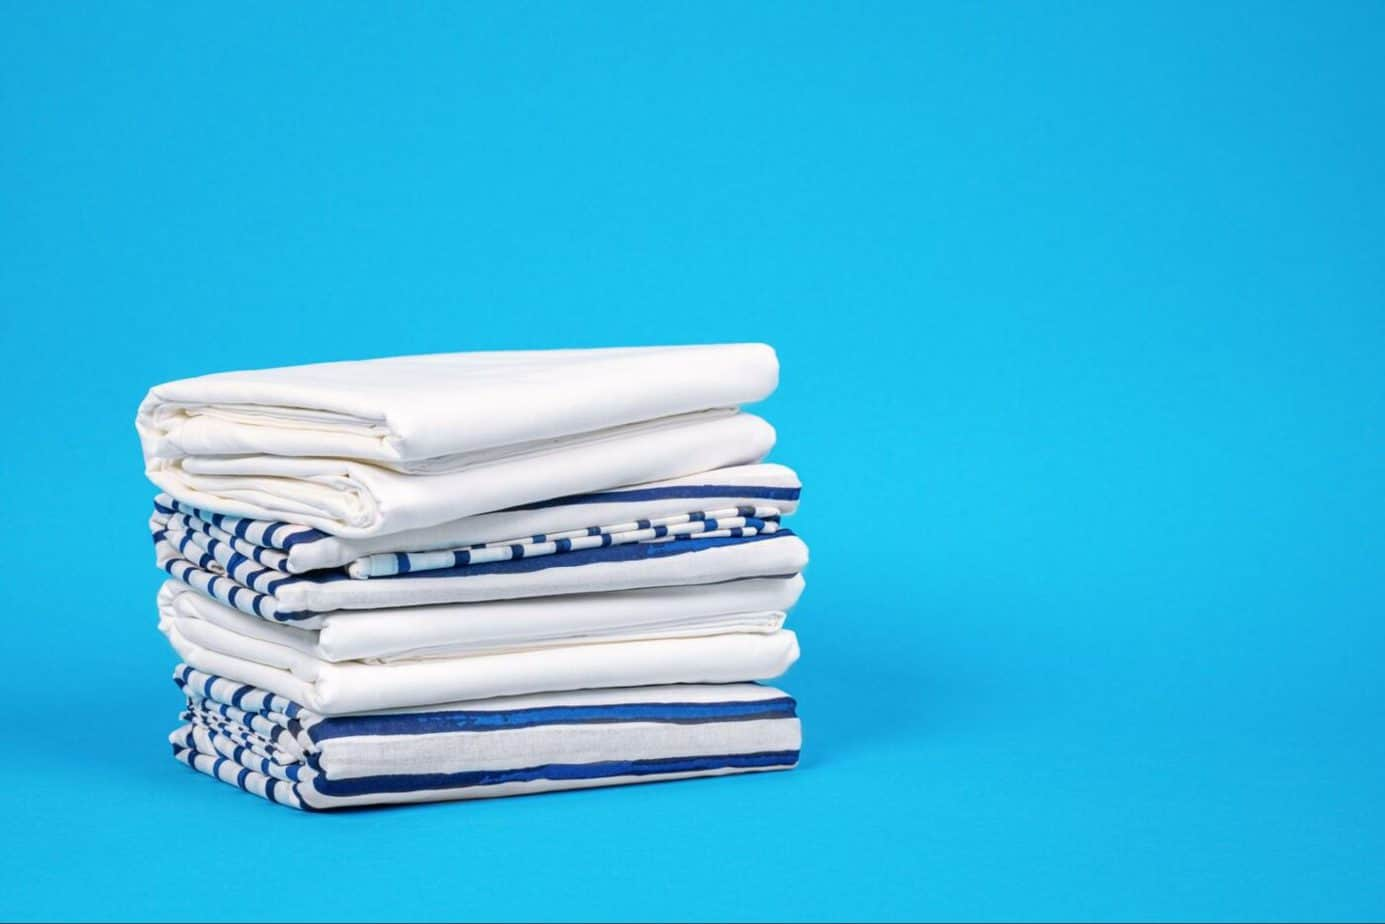 A set of percale and sateen sheets